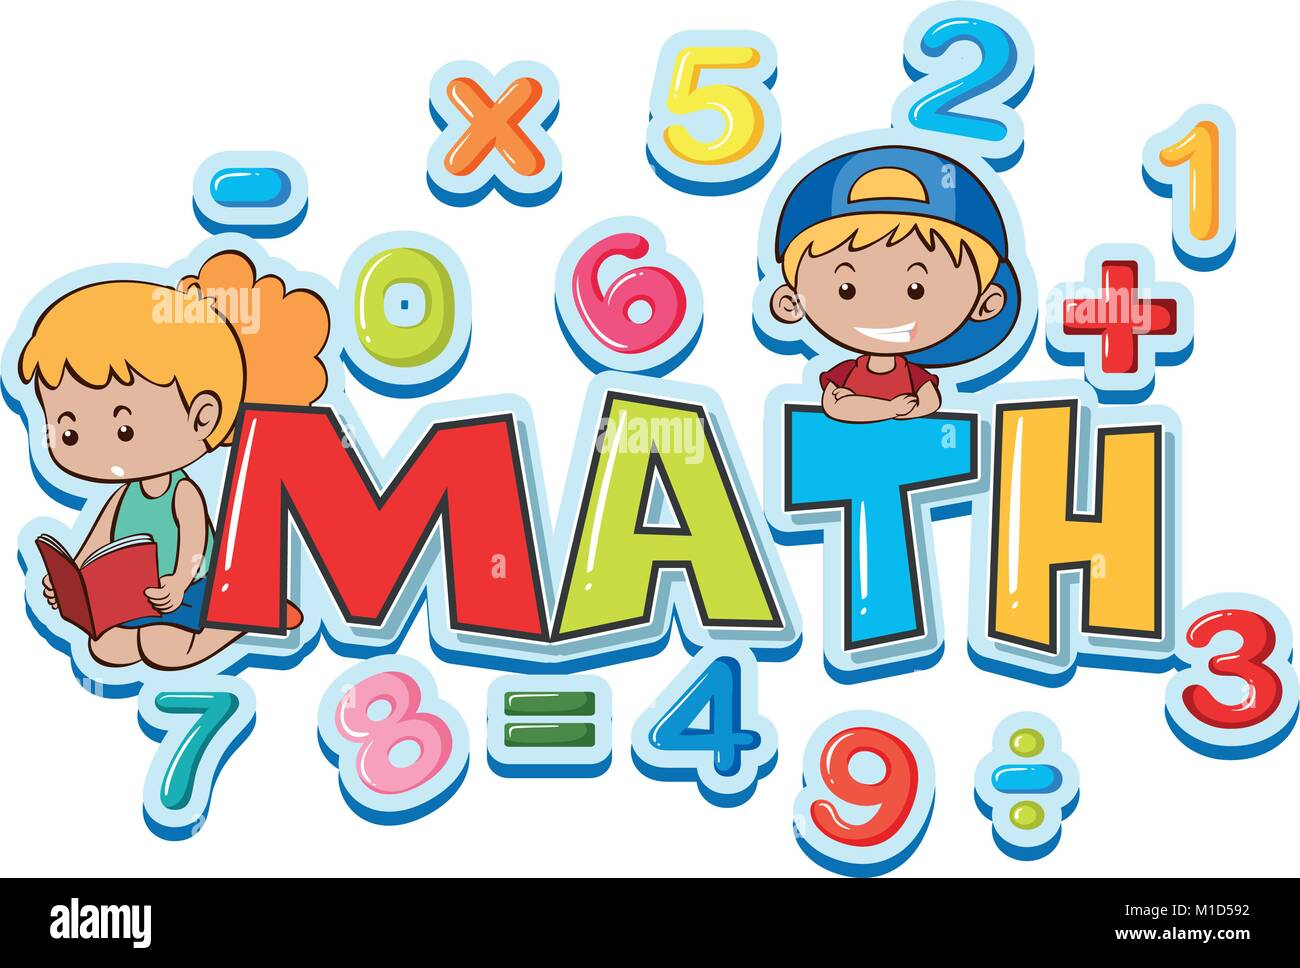 Font design for word math with many numbers and kids illustration ...